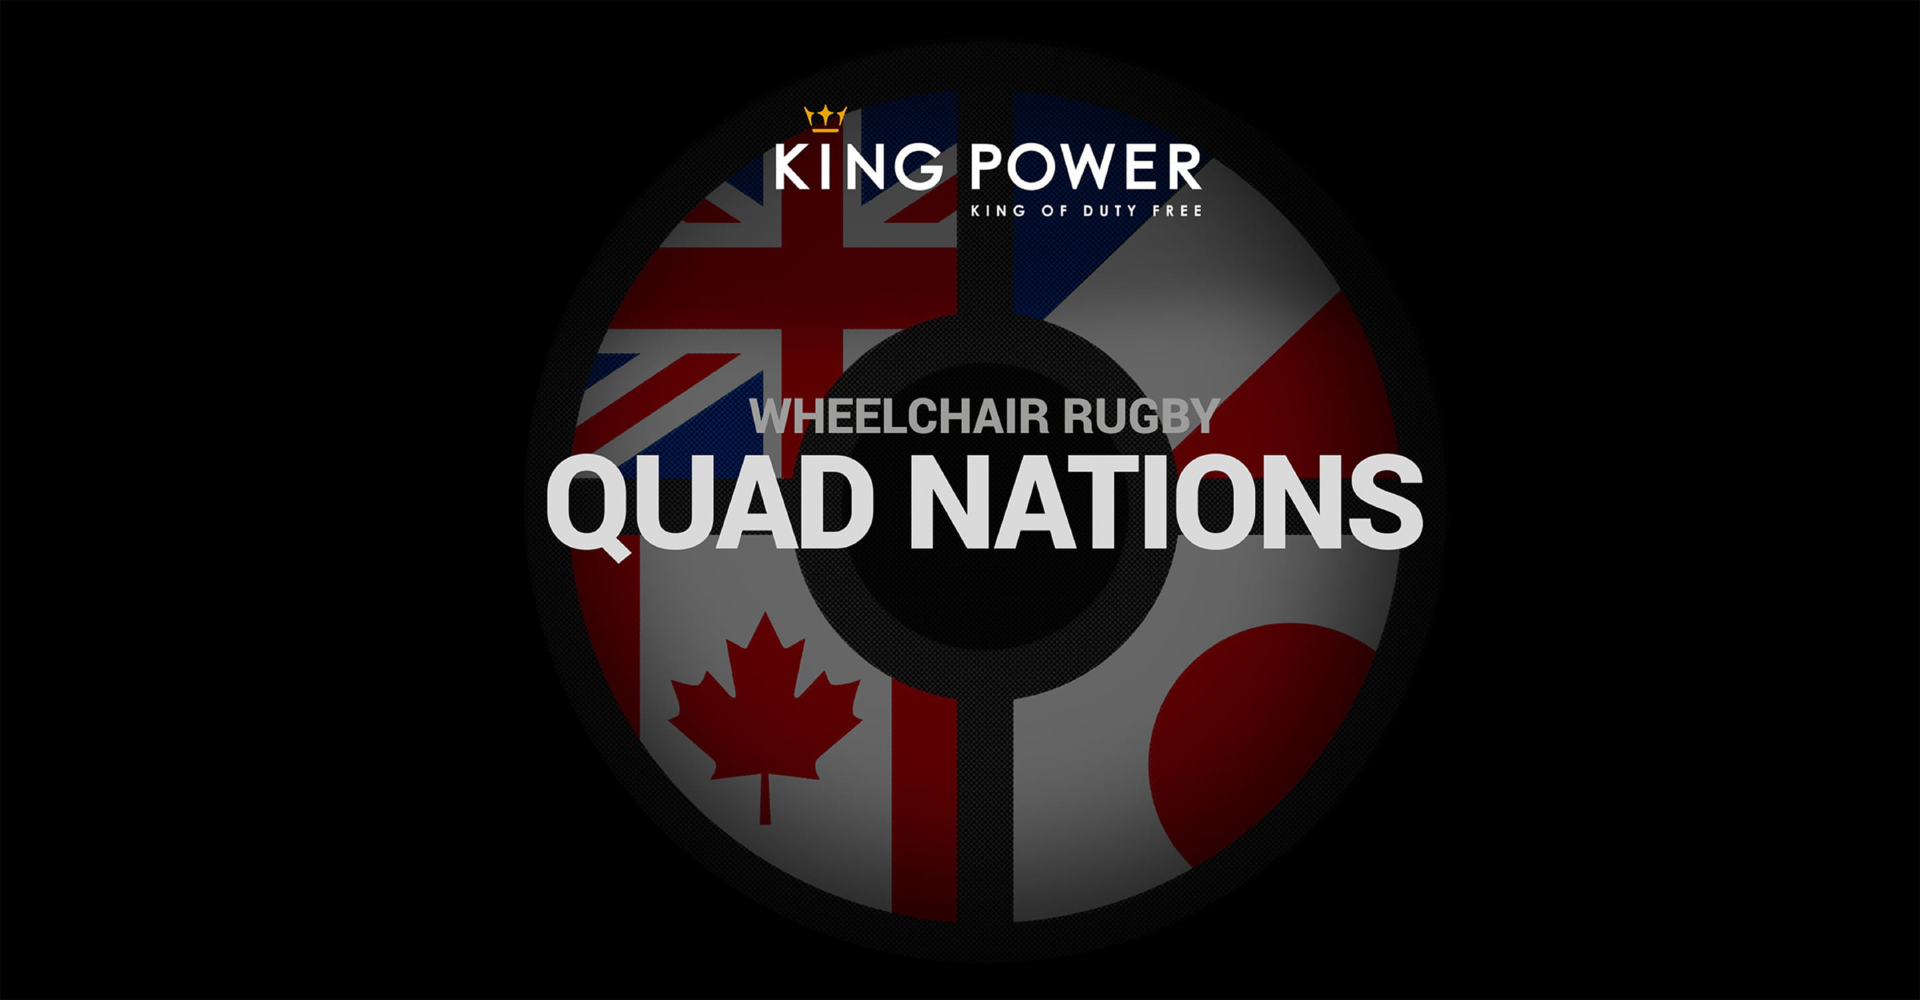 RECAP: CANADA FINISHES 4TH AT THE 2019 KING POWER QUAD NATIONS